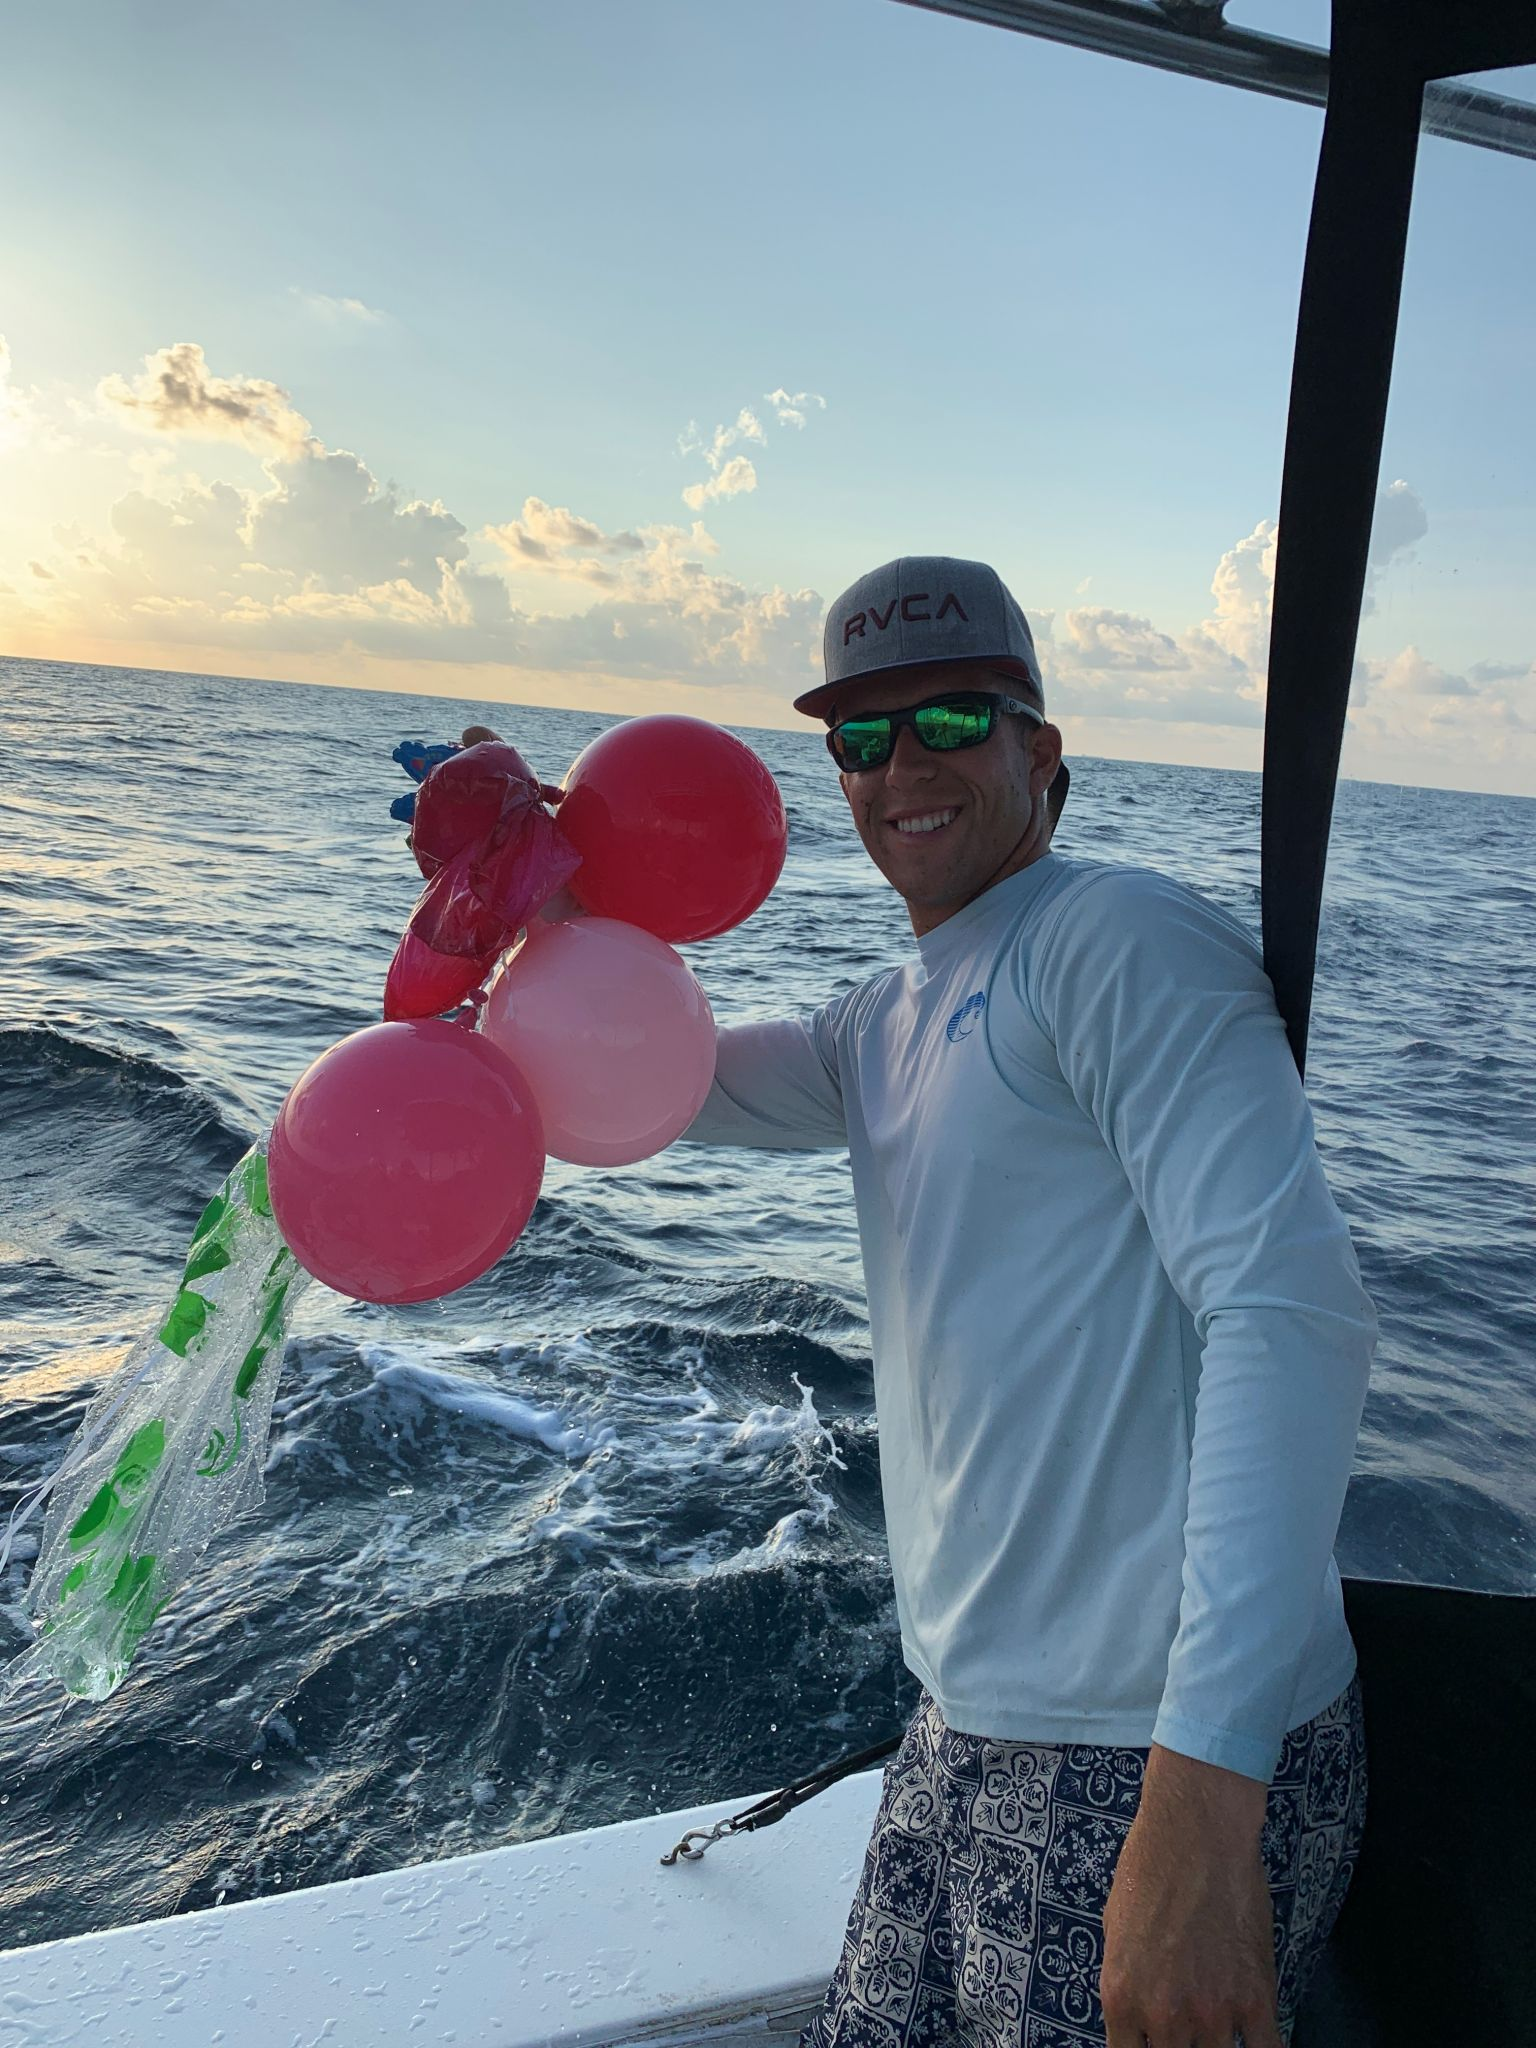 Galveston fishermen start 'balloon roundup' to raise awareness on the dangers of balloon releases